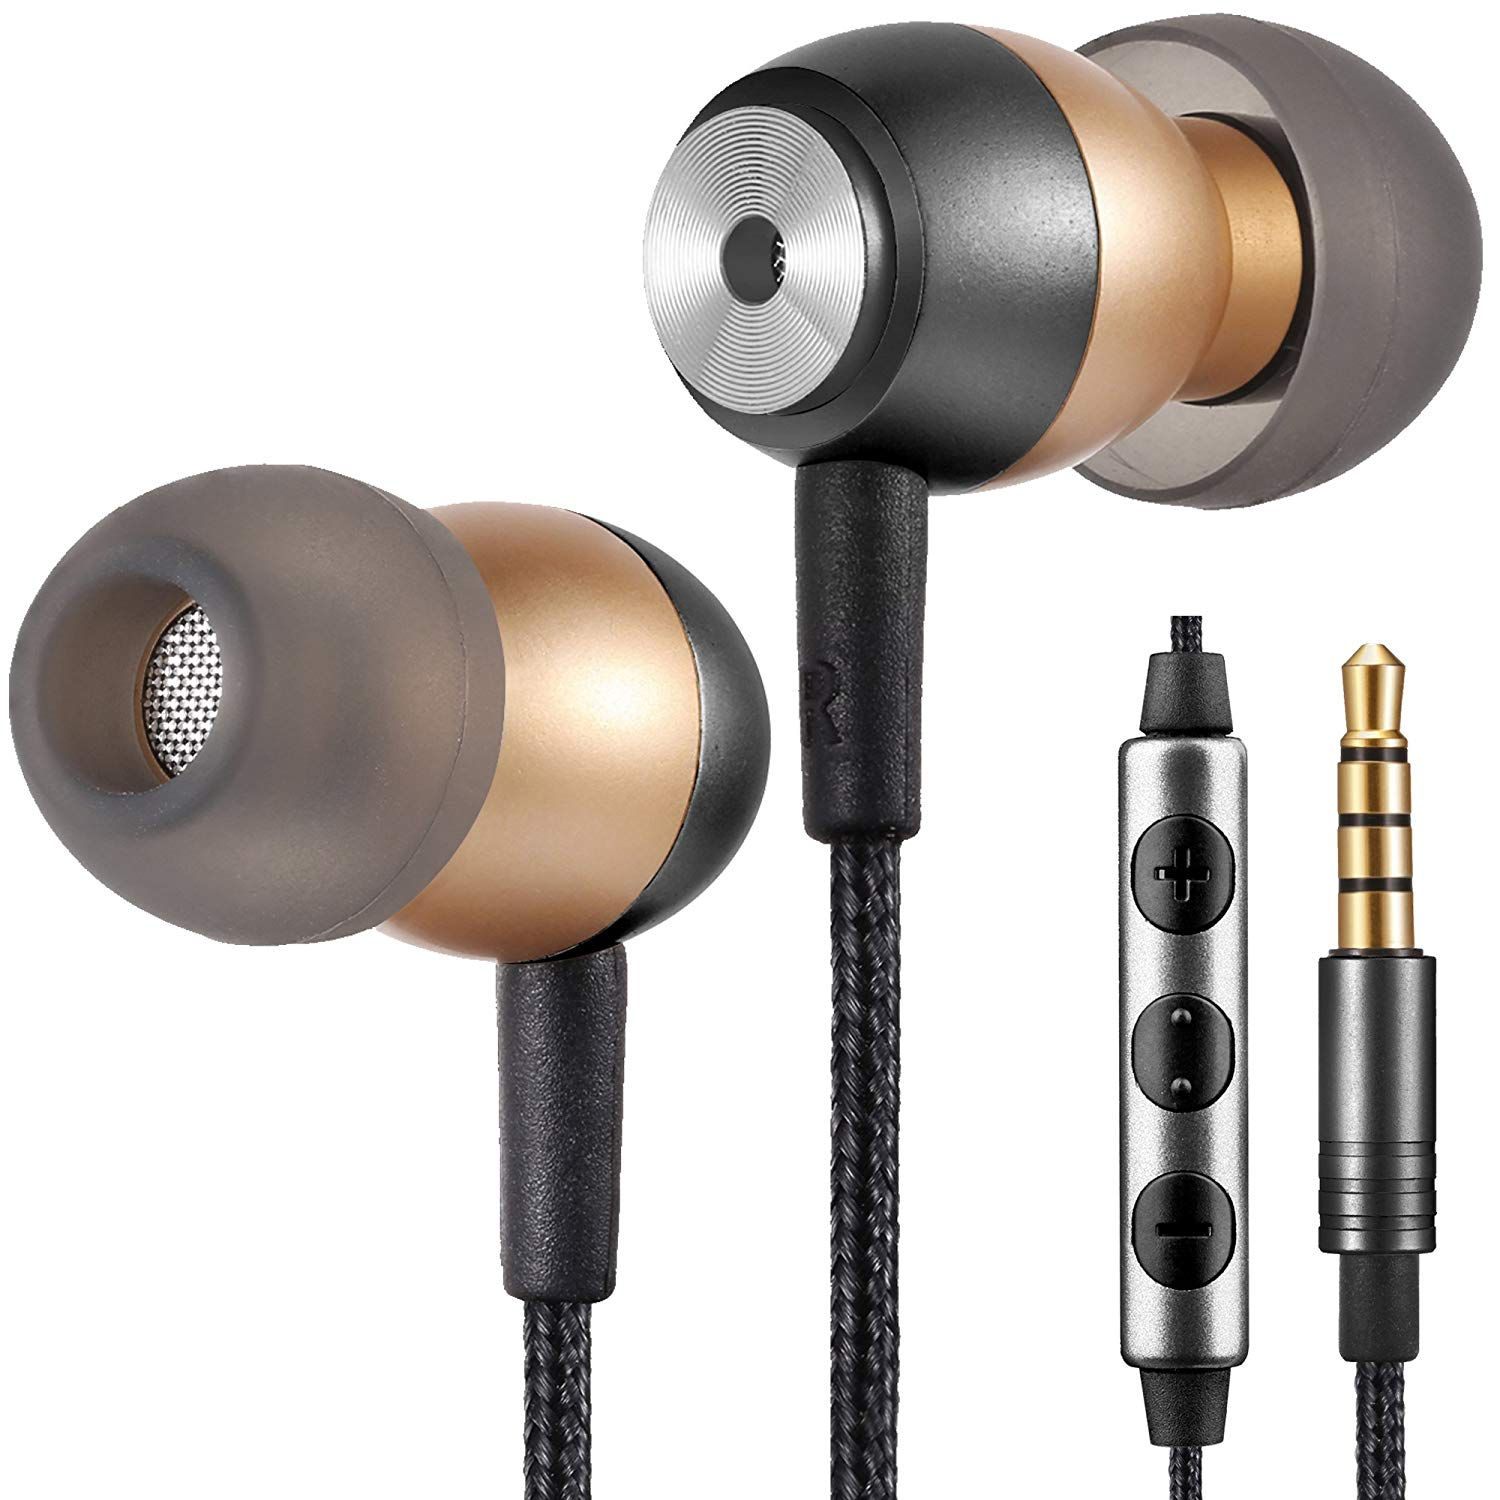 Betron GLD60 Noise Isolating In-Ear Earphones